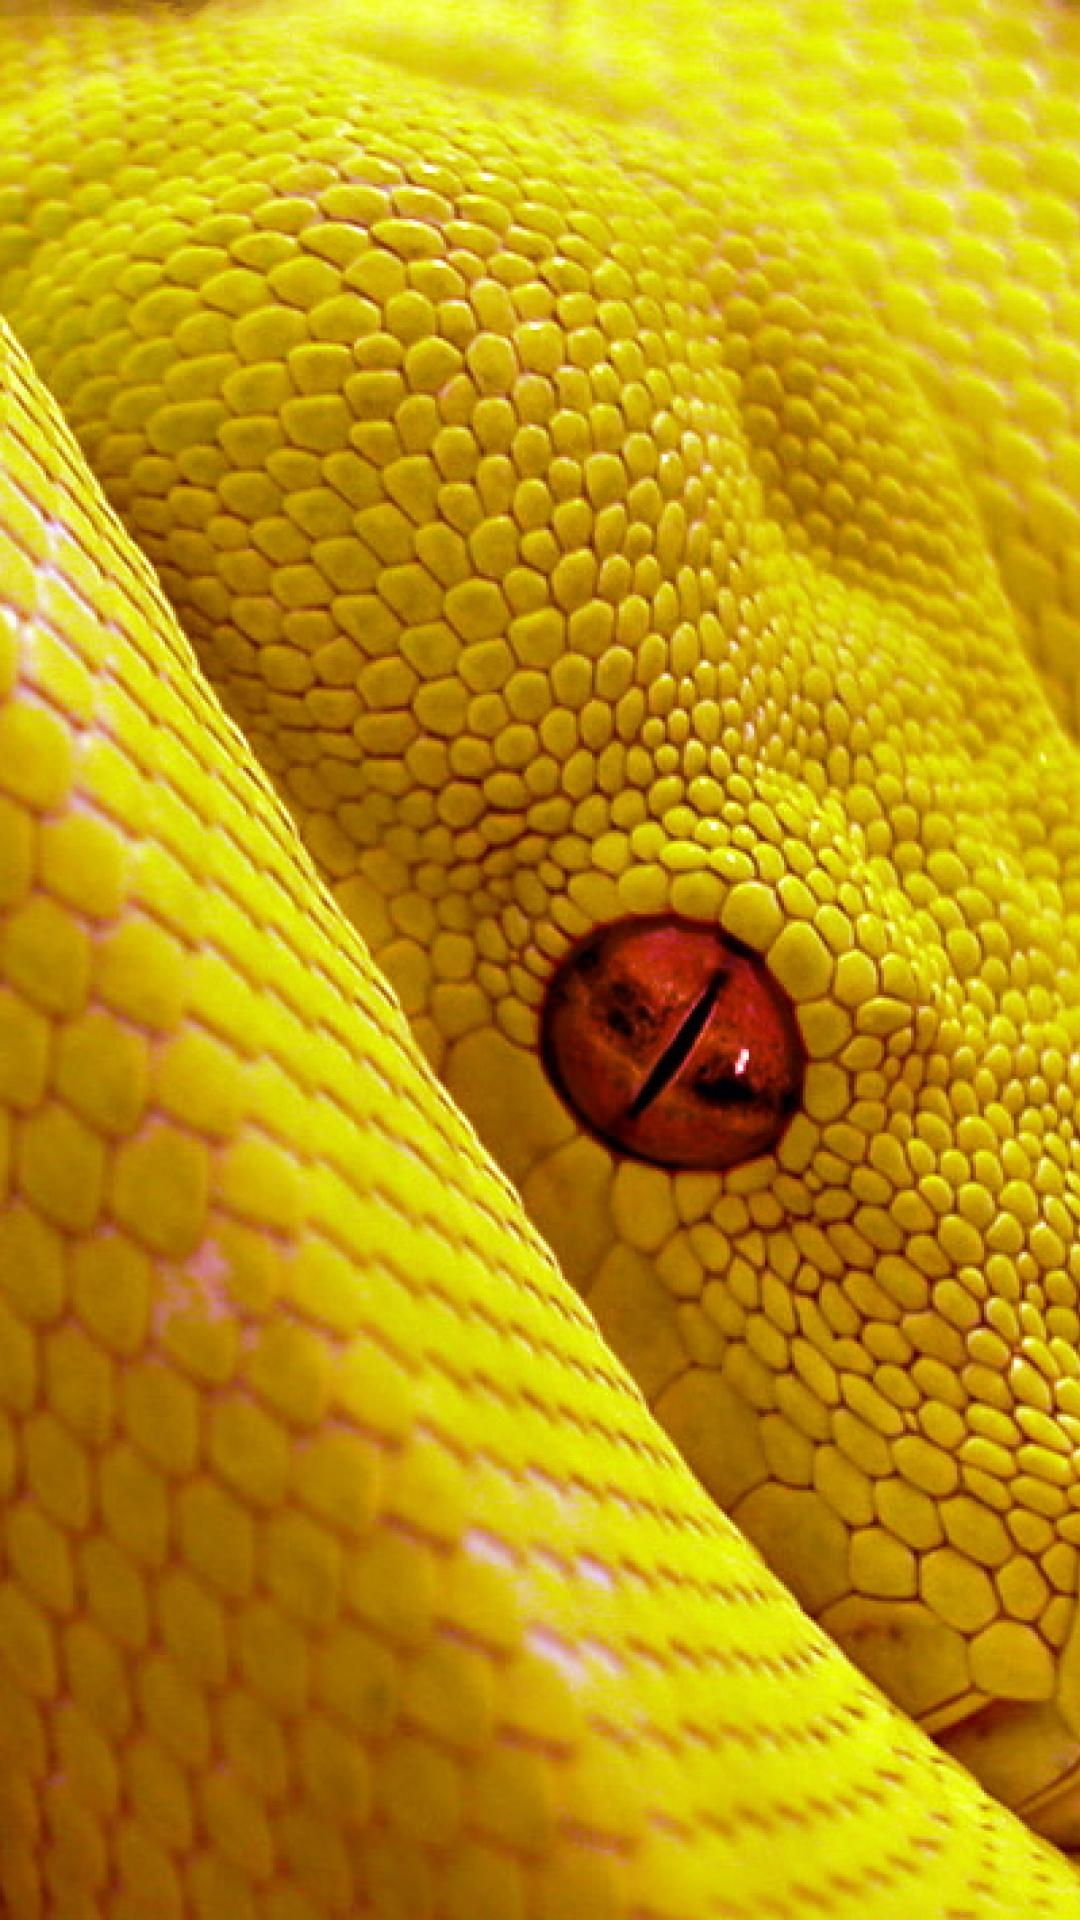 snake yellow high resolution 90QV 1080x1920